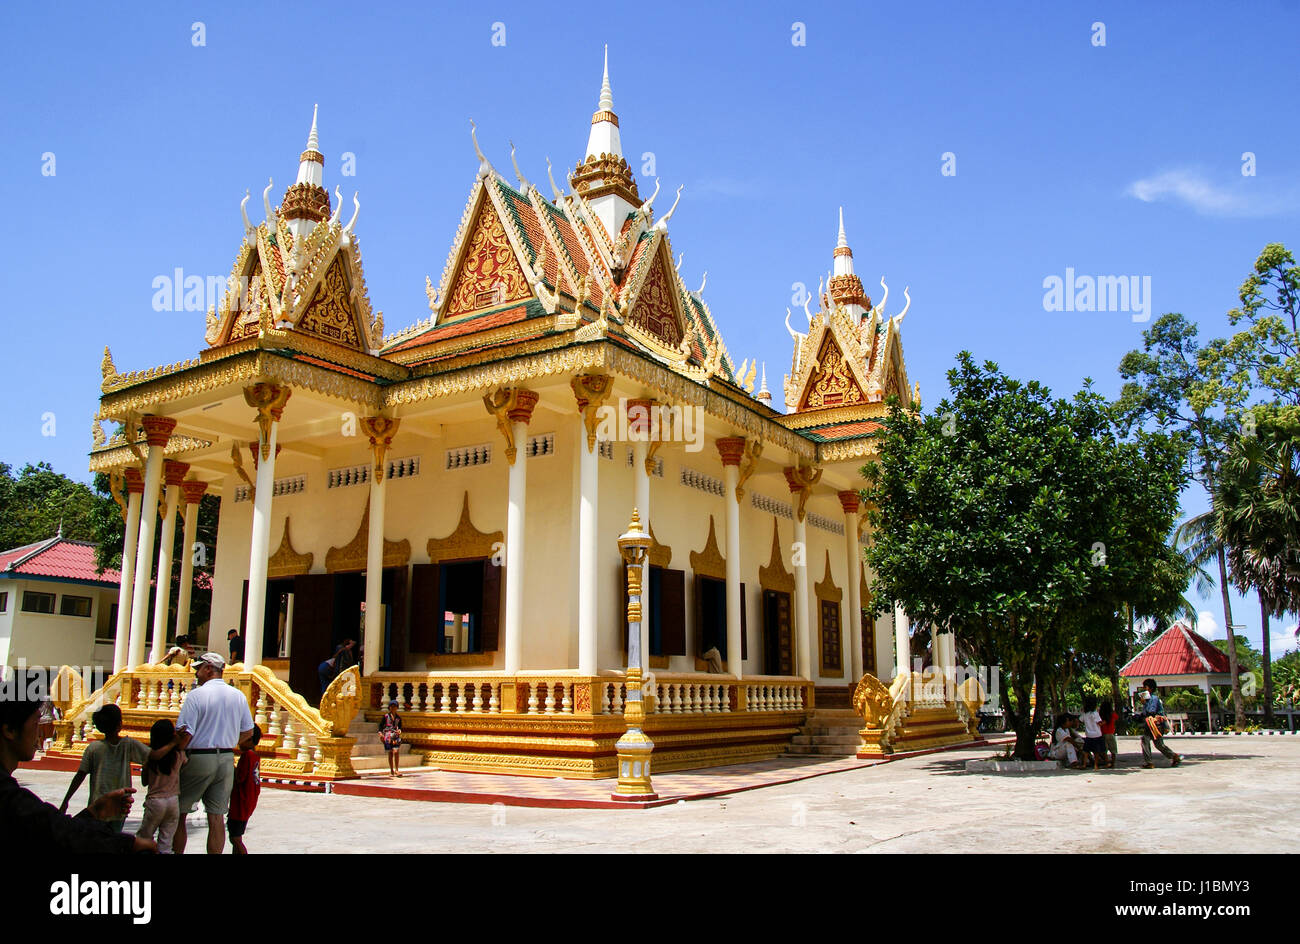 Beautiful Buddist Temple in Sihanoukville, Cambodia, built in the traditional style. Wat Krom - Stock Image